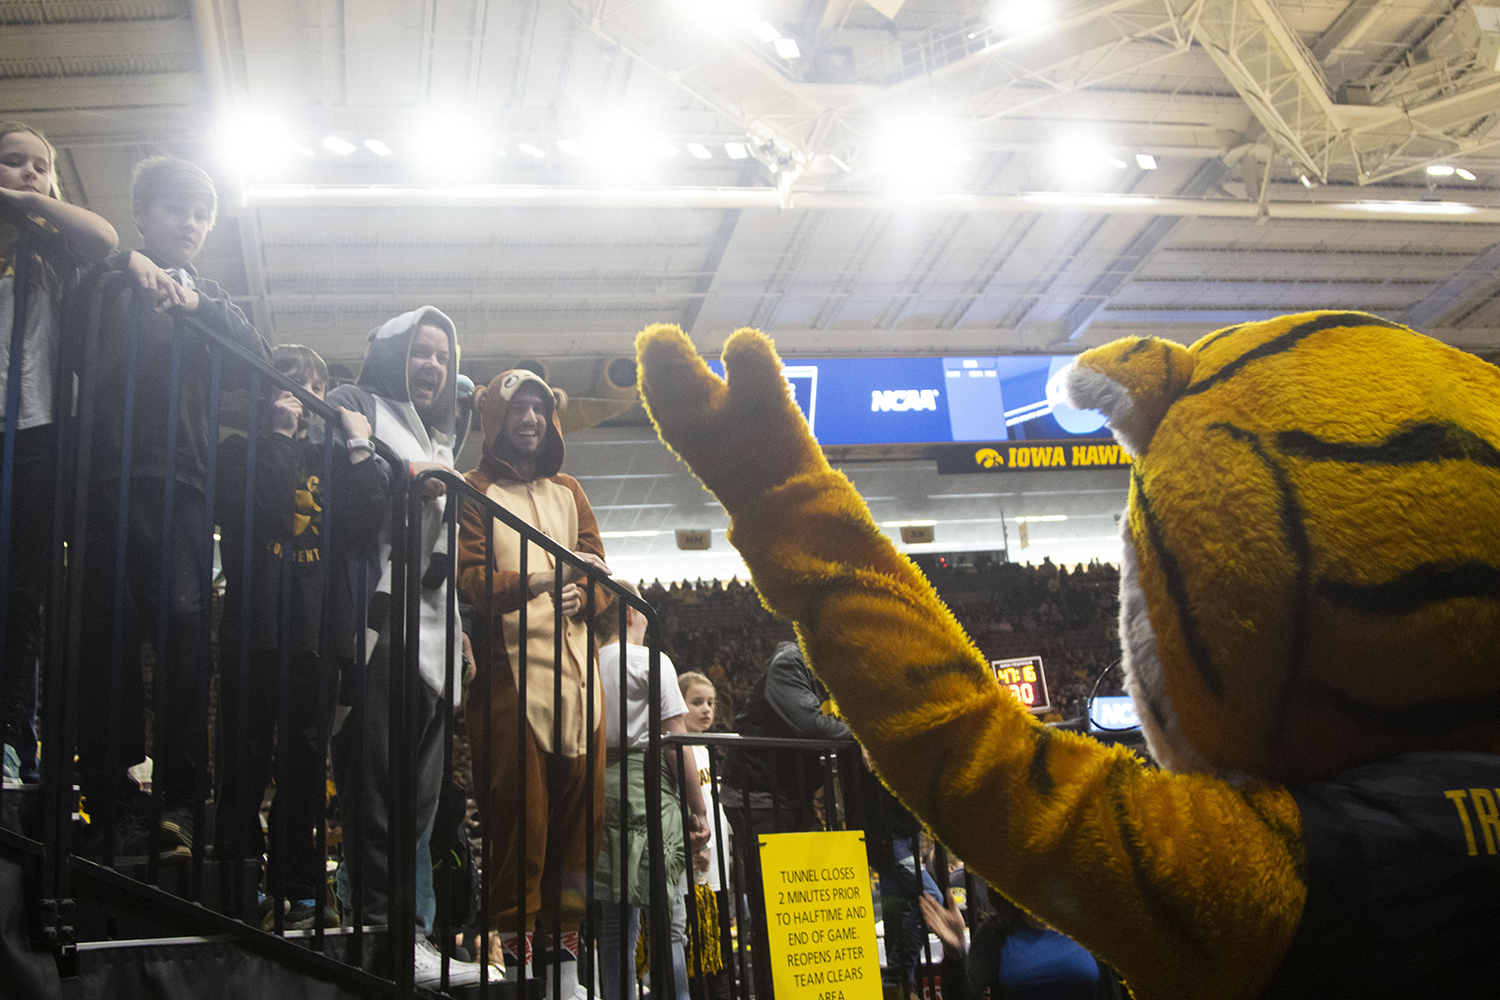 Truman+the+Tiger+greets+fans+before+the+Iowa%2FMizzou+NCAA+Tournament+second+round+women%27s+basketball+game+in+Carver-Hawkeye+Arena++on+Sunday%2C+March+24%2C+2019.+The+Hawkeyes+defeated+the+Tigers%2C+68-52.